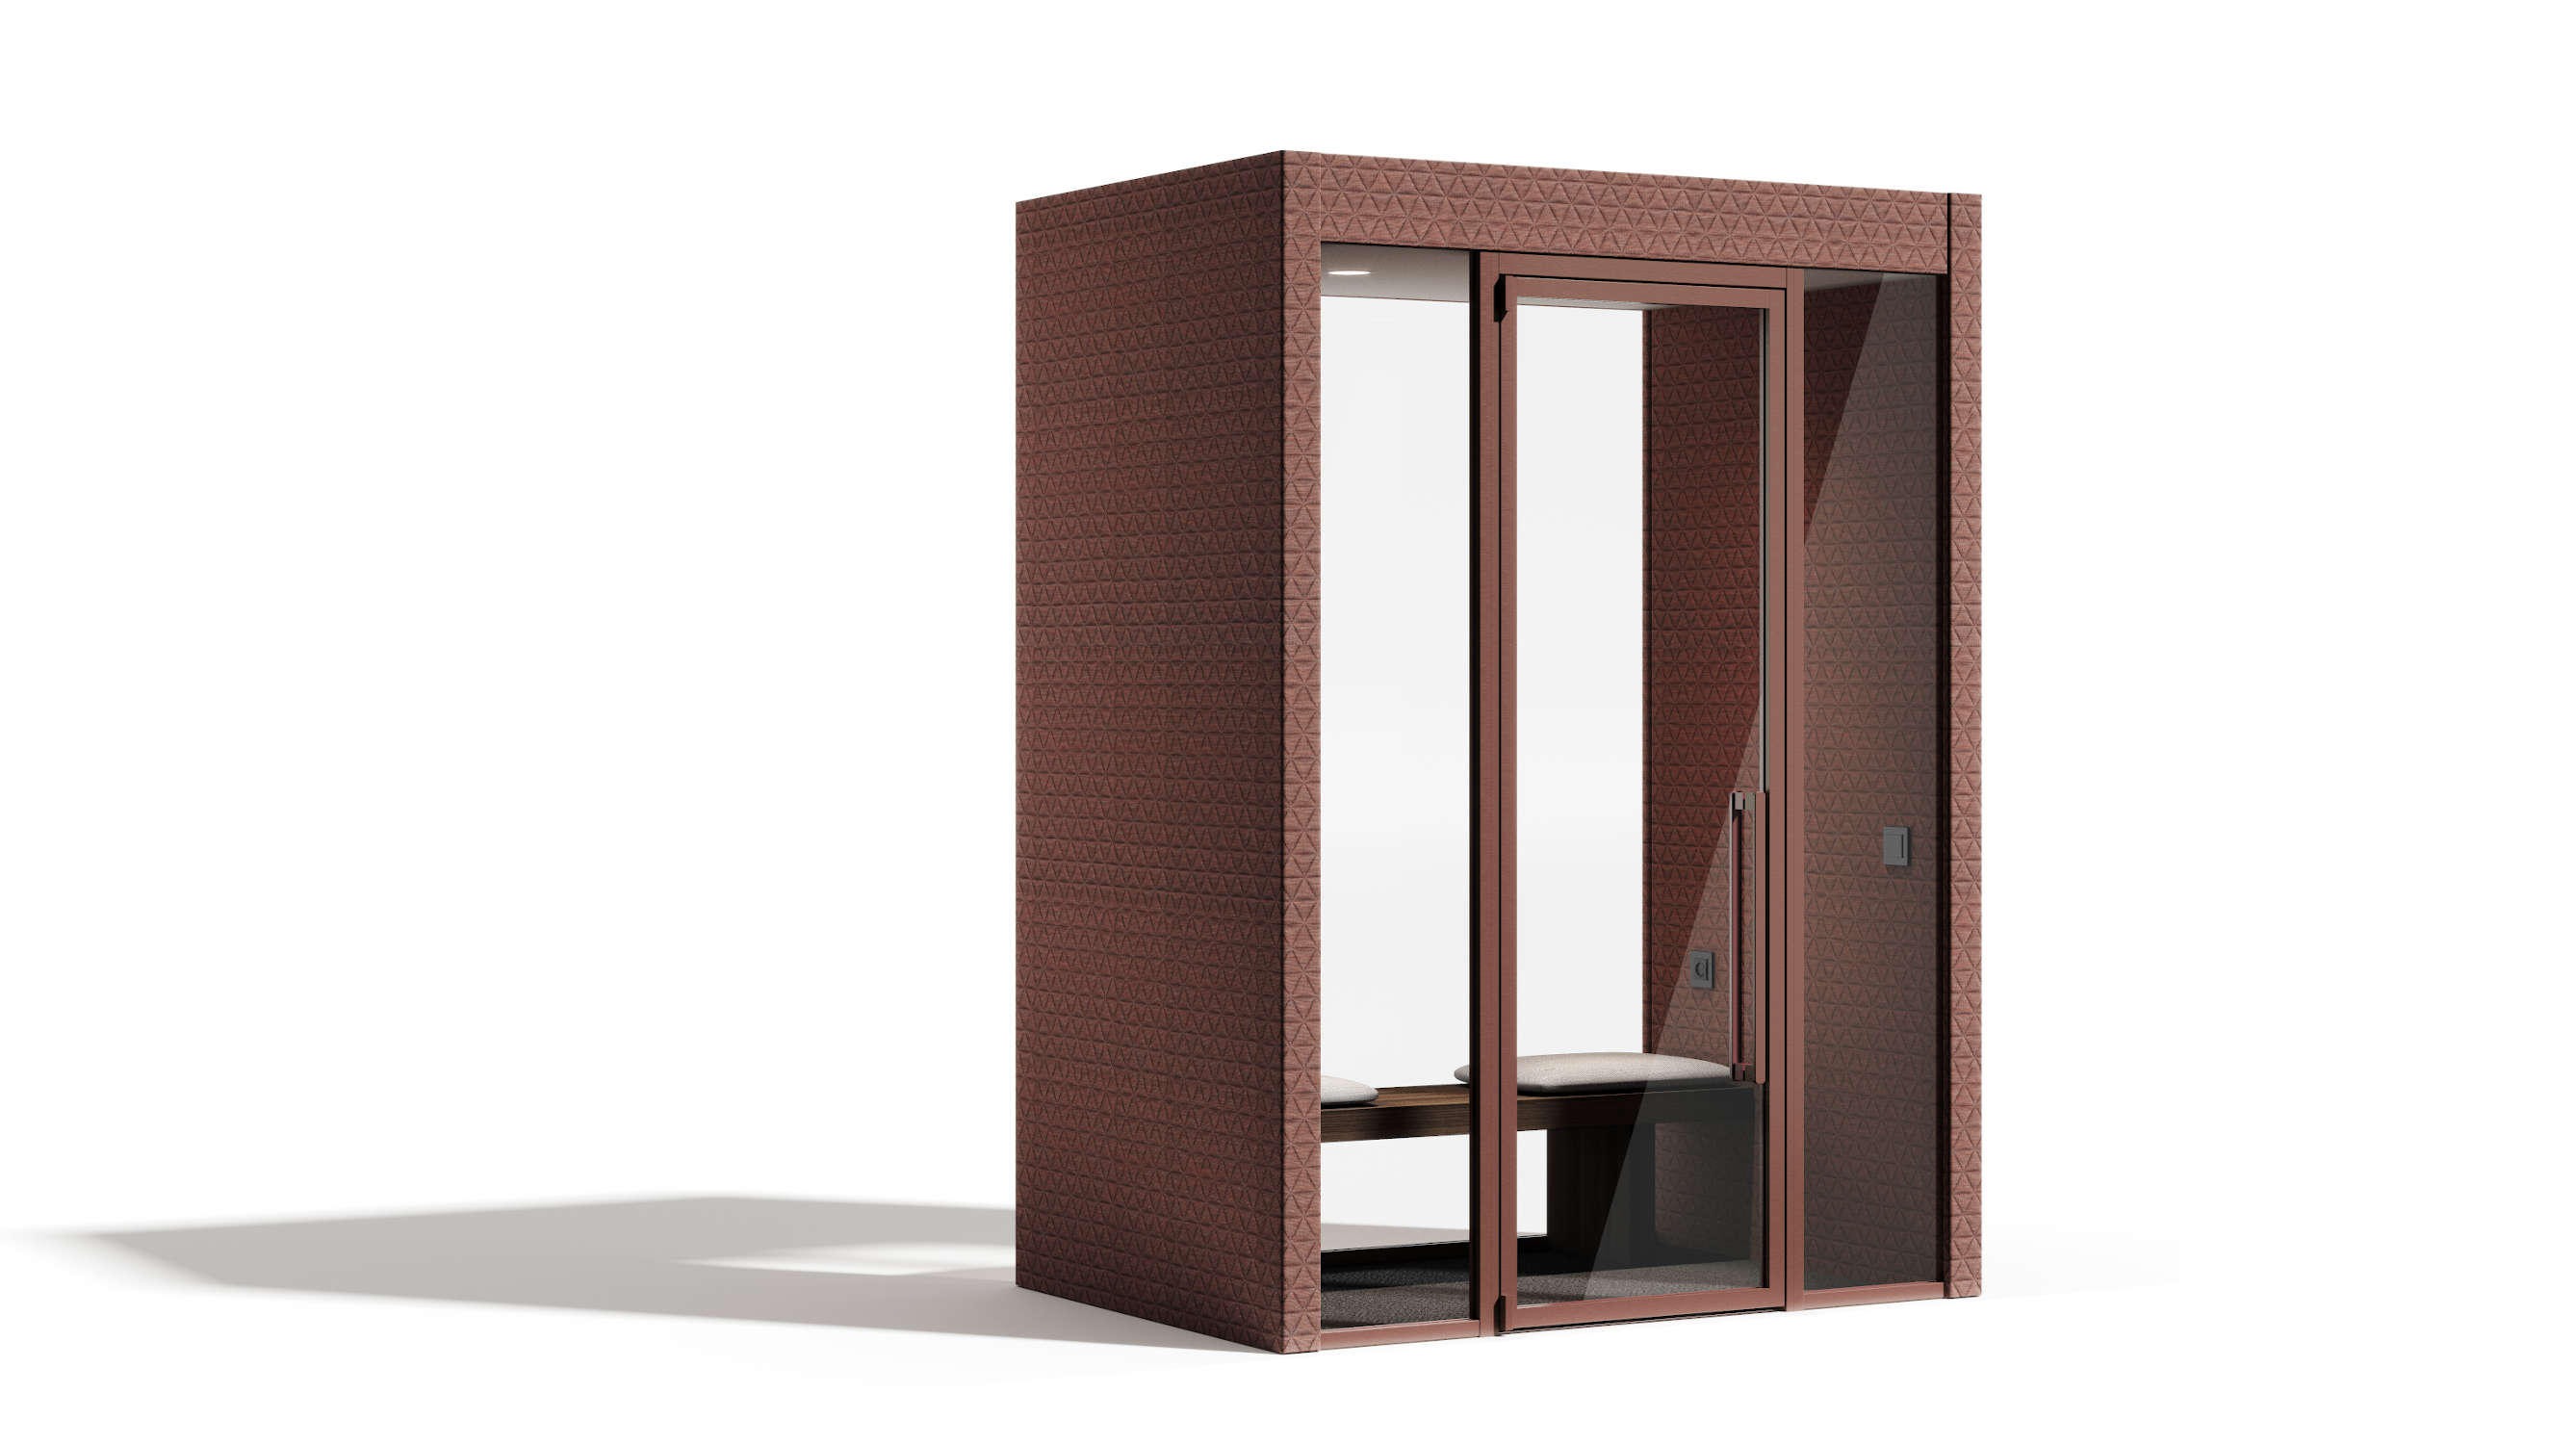 Bibiena acoustic cabin manerba for Manerba spa